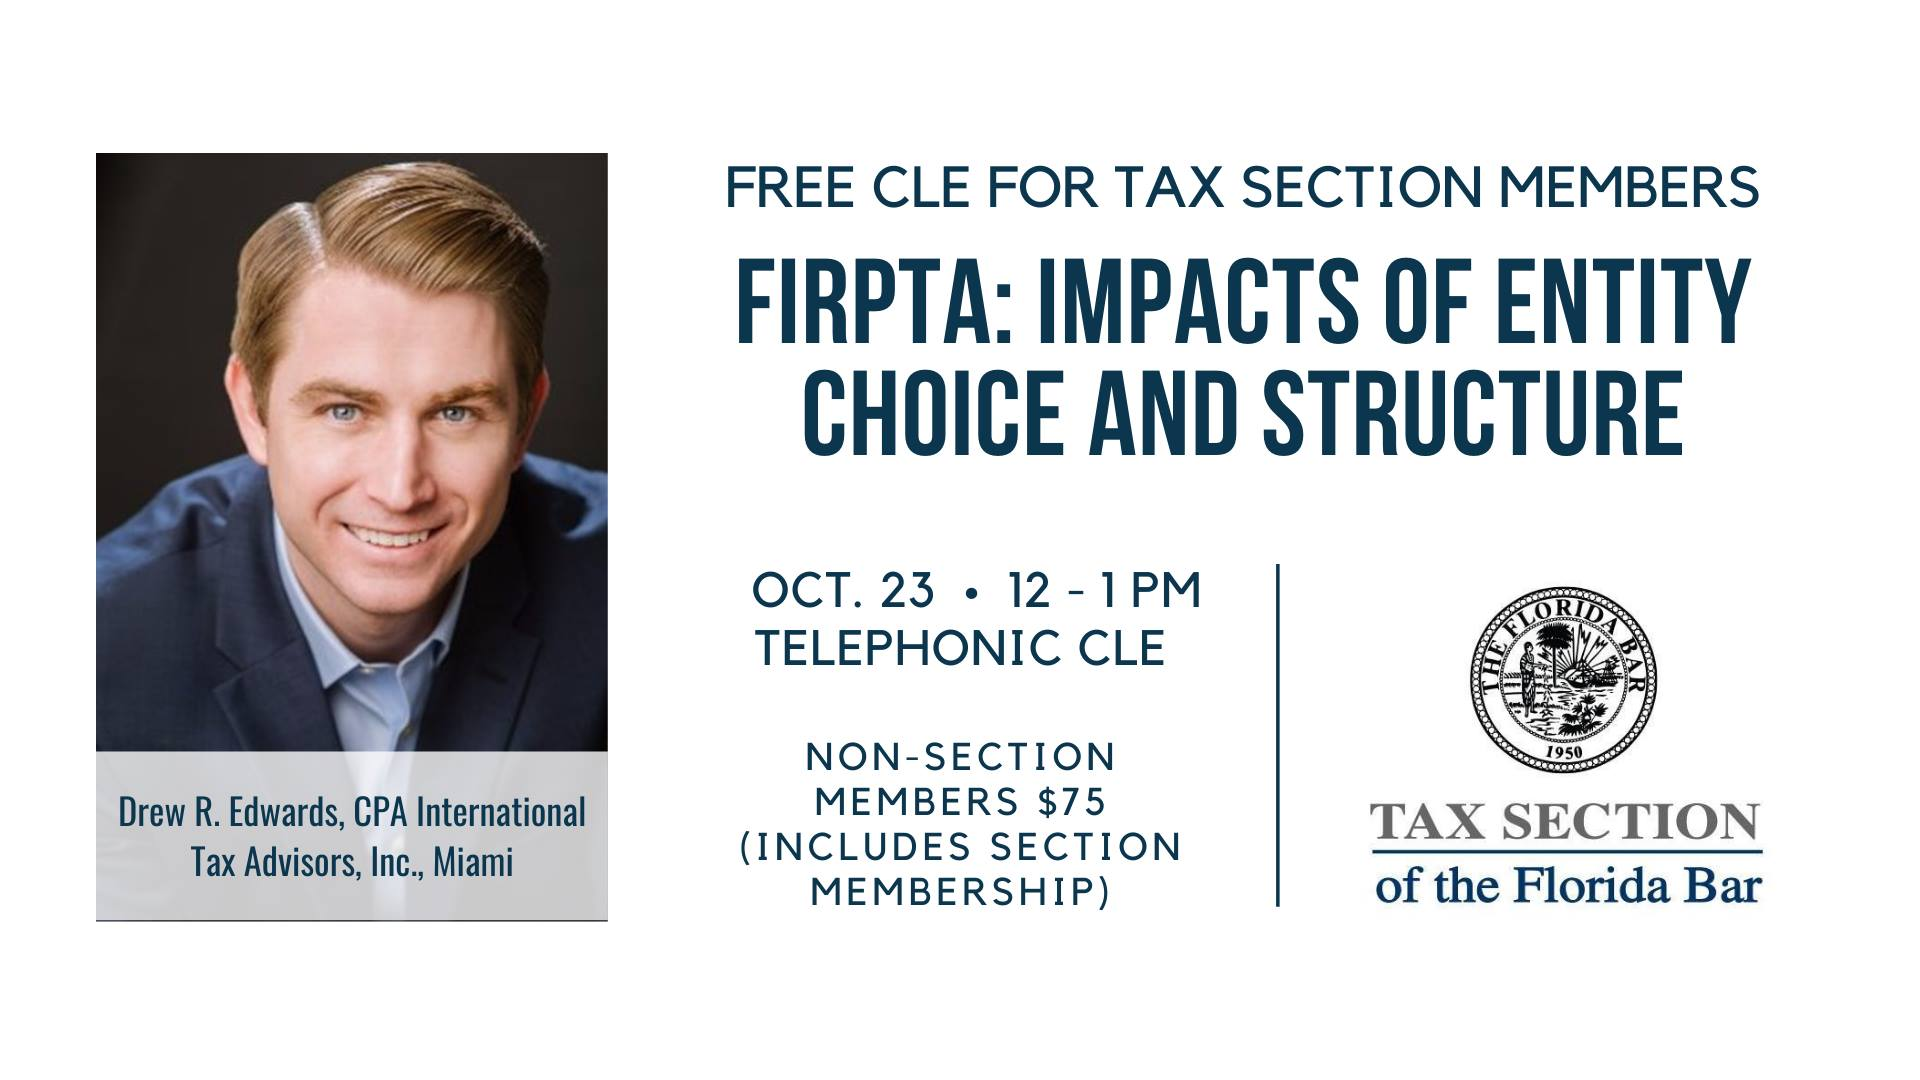 Florida bar CLE FIRPTA entity choice international tax advisors international tax accountant CPA miami doral ft. lauderdale drew edwards